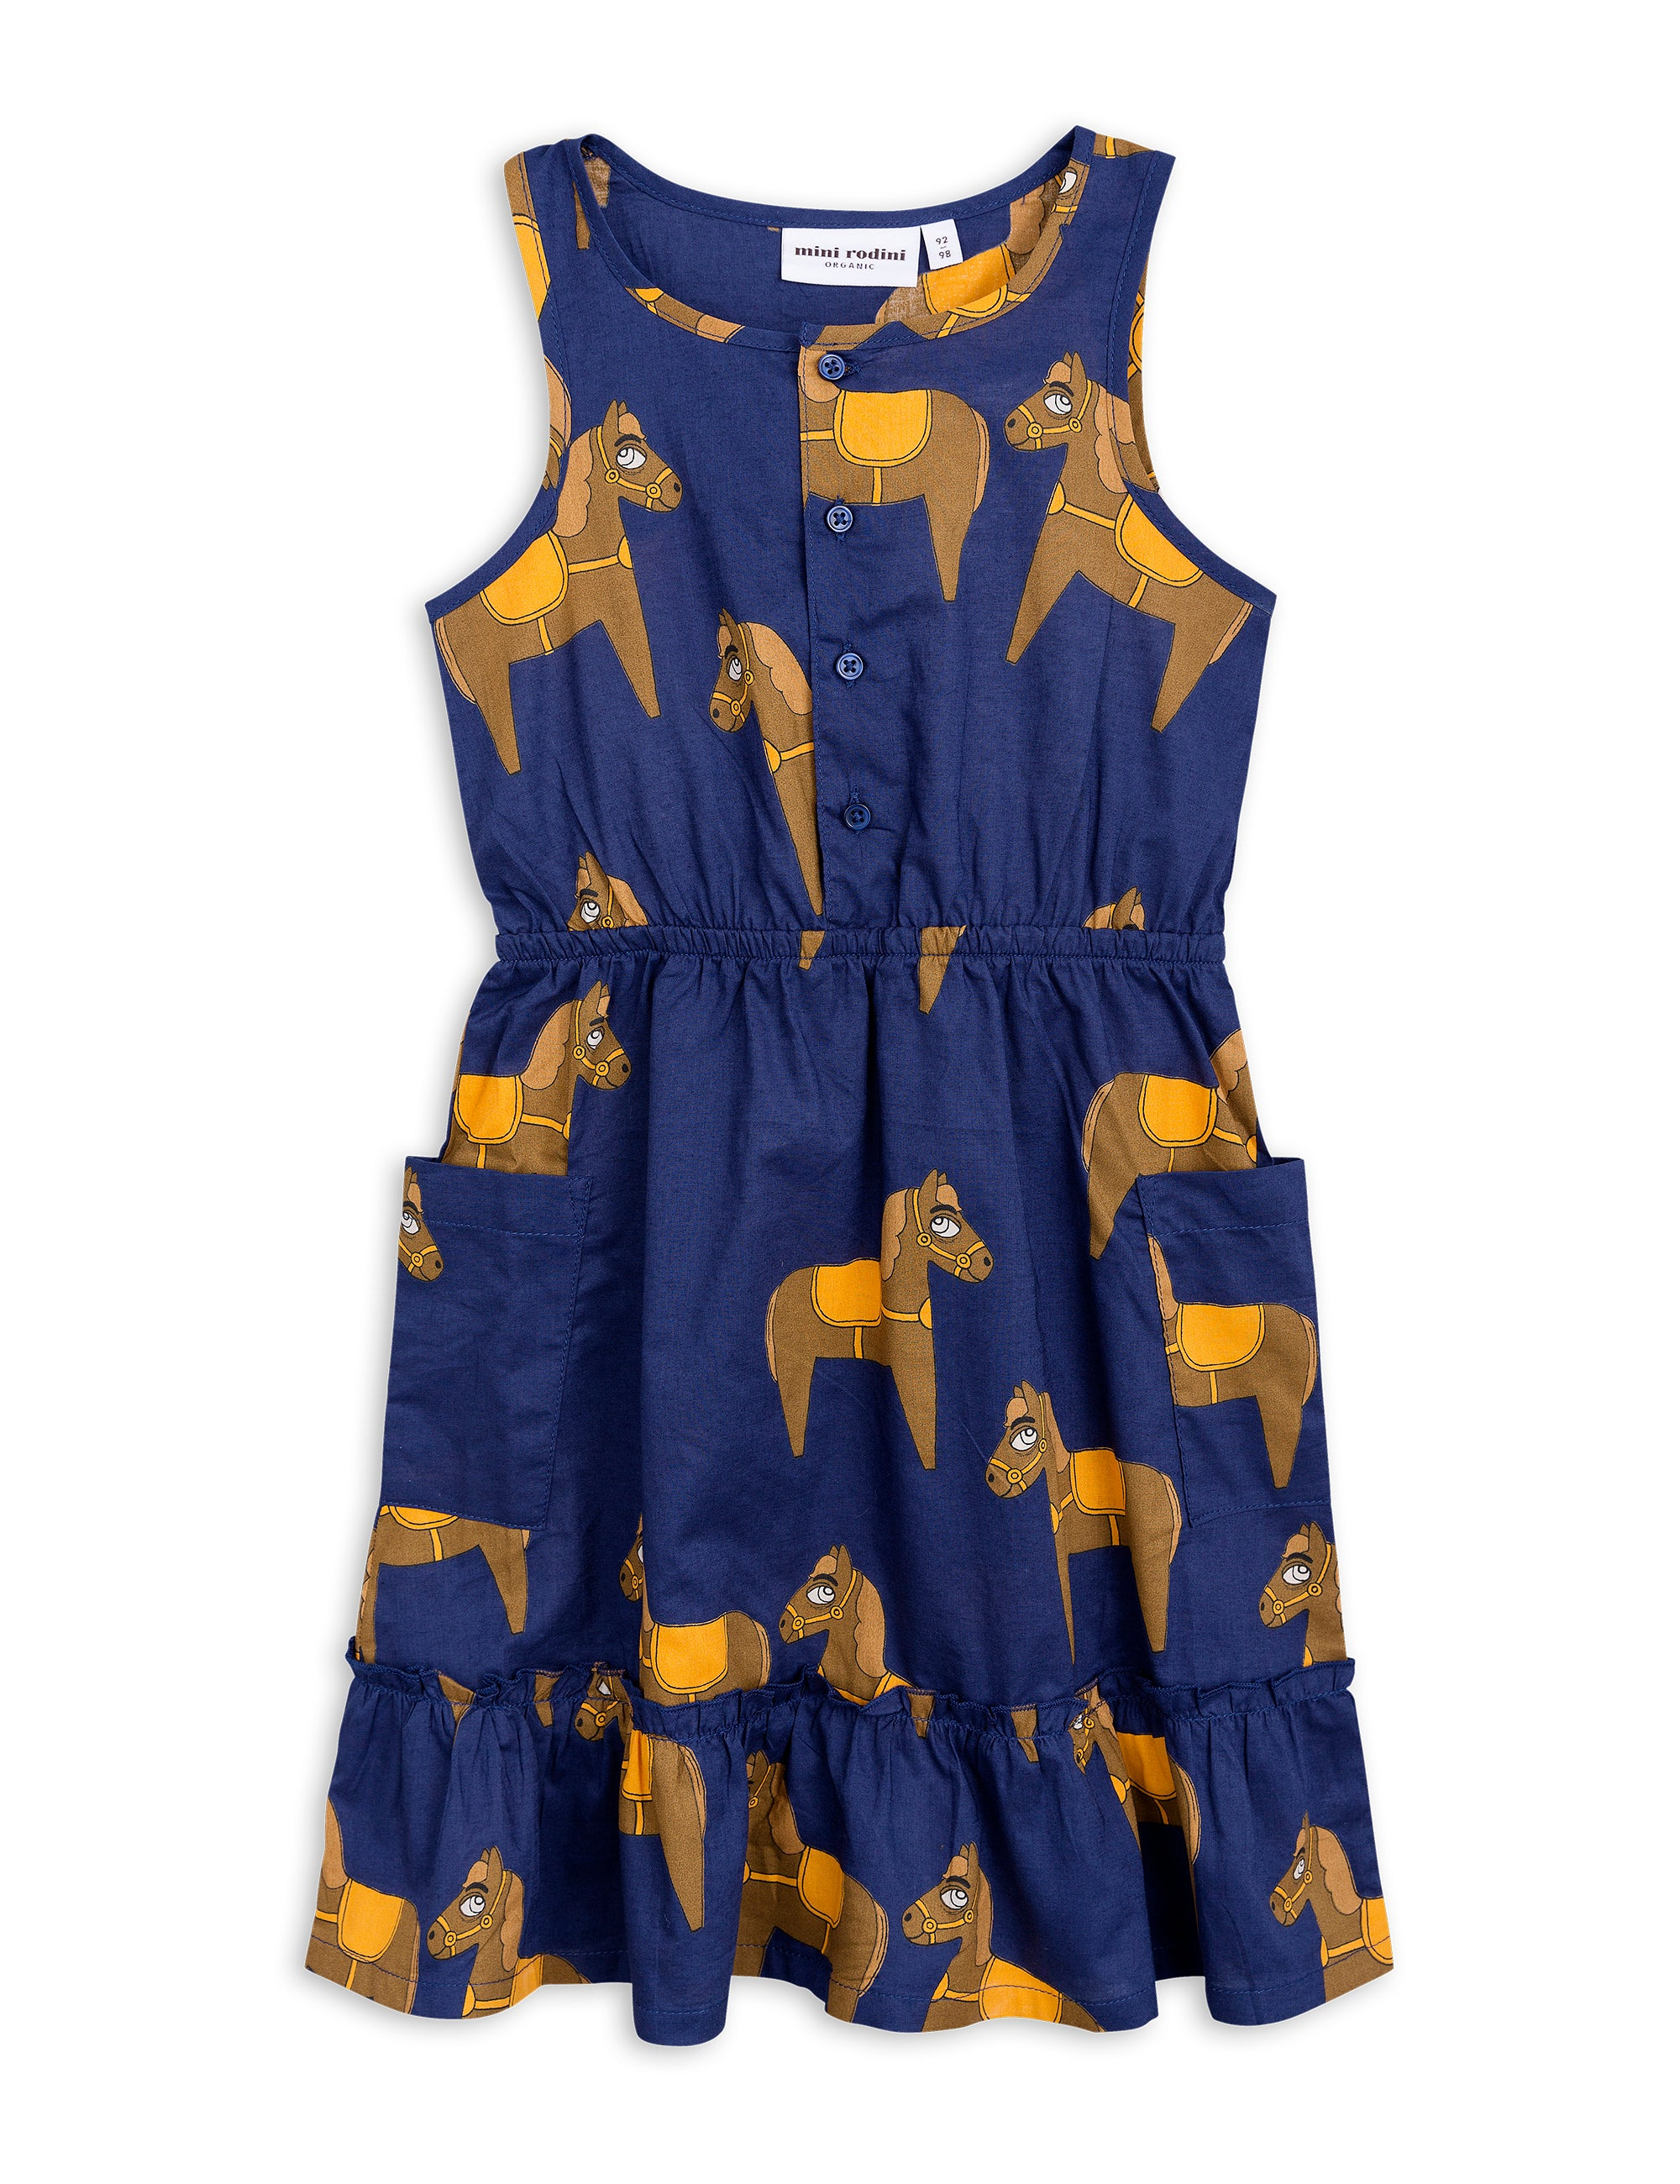 MINI RODINI - Horse Woven Flounce Dress / Navy